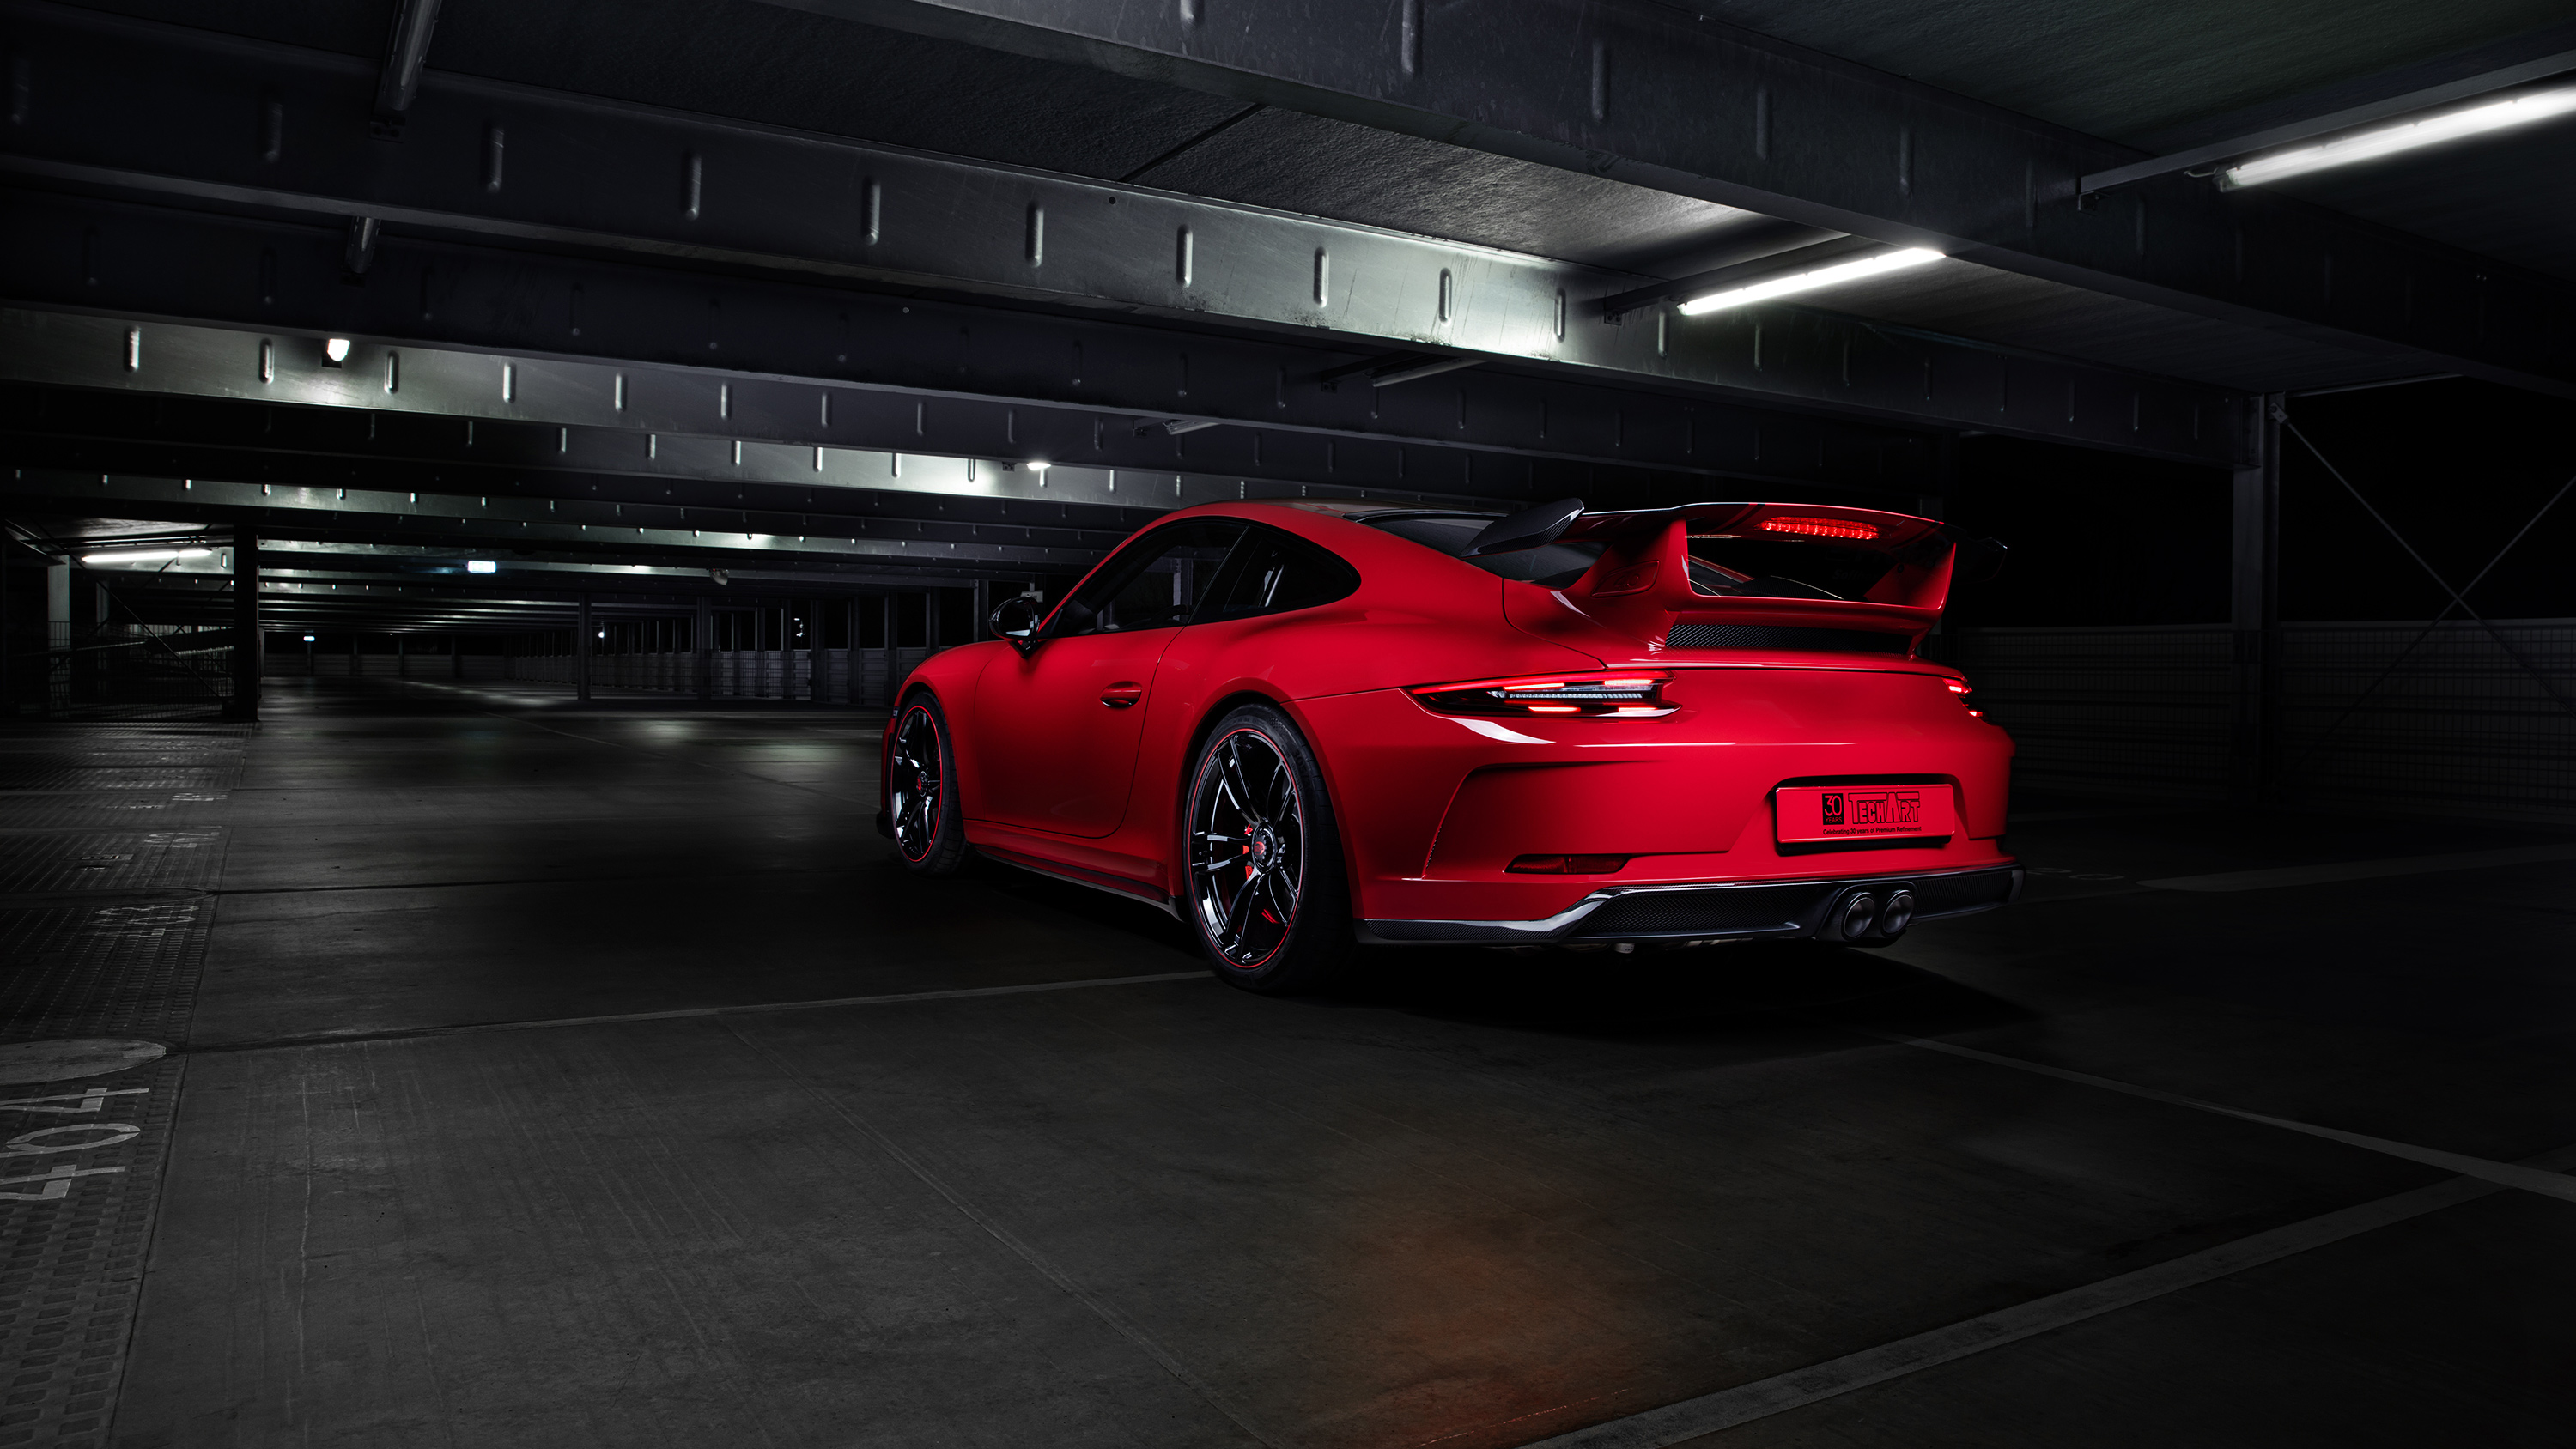 2018 Techart Porsche 911 Gt3 3 Wallpaper Hd Car